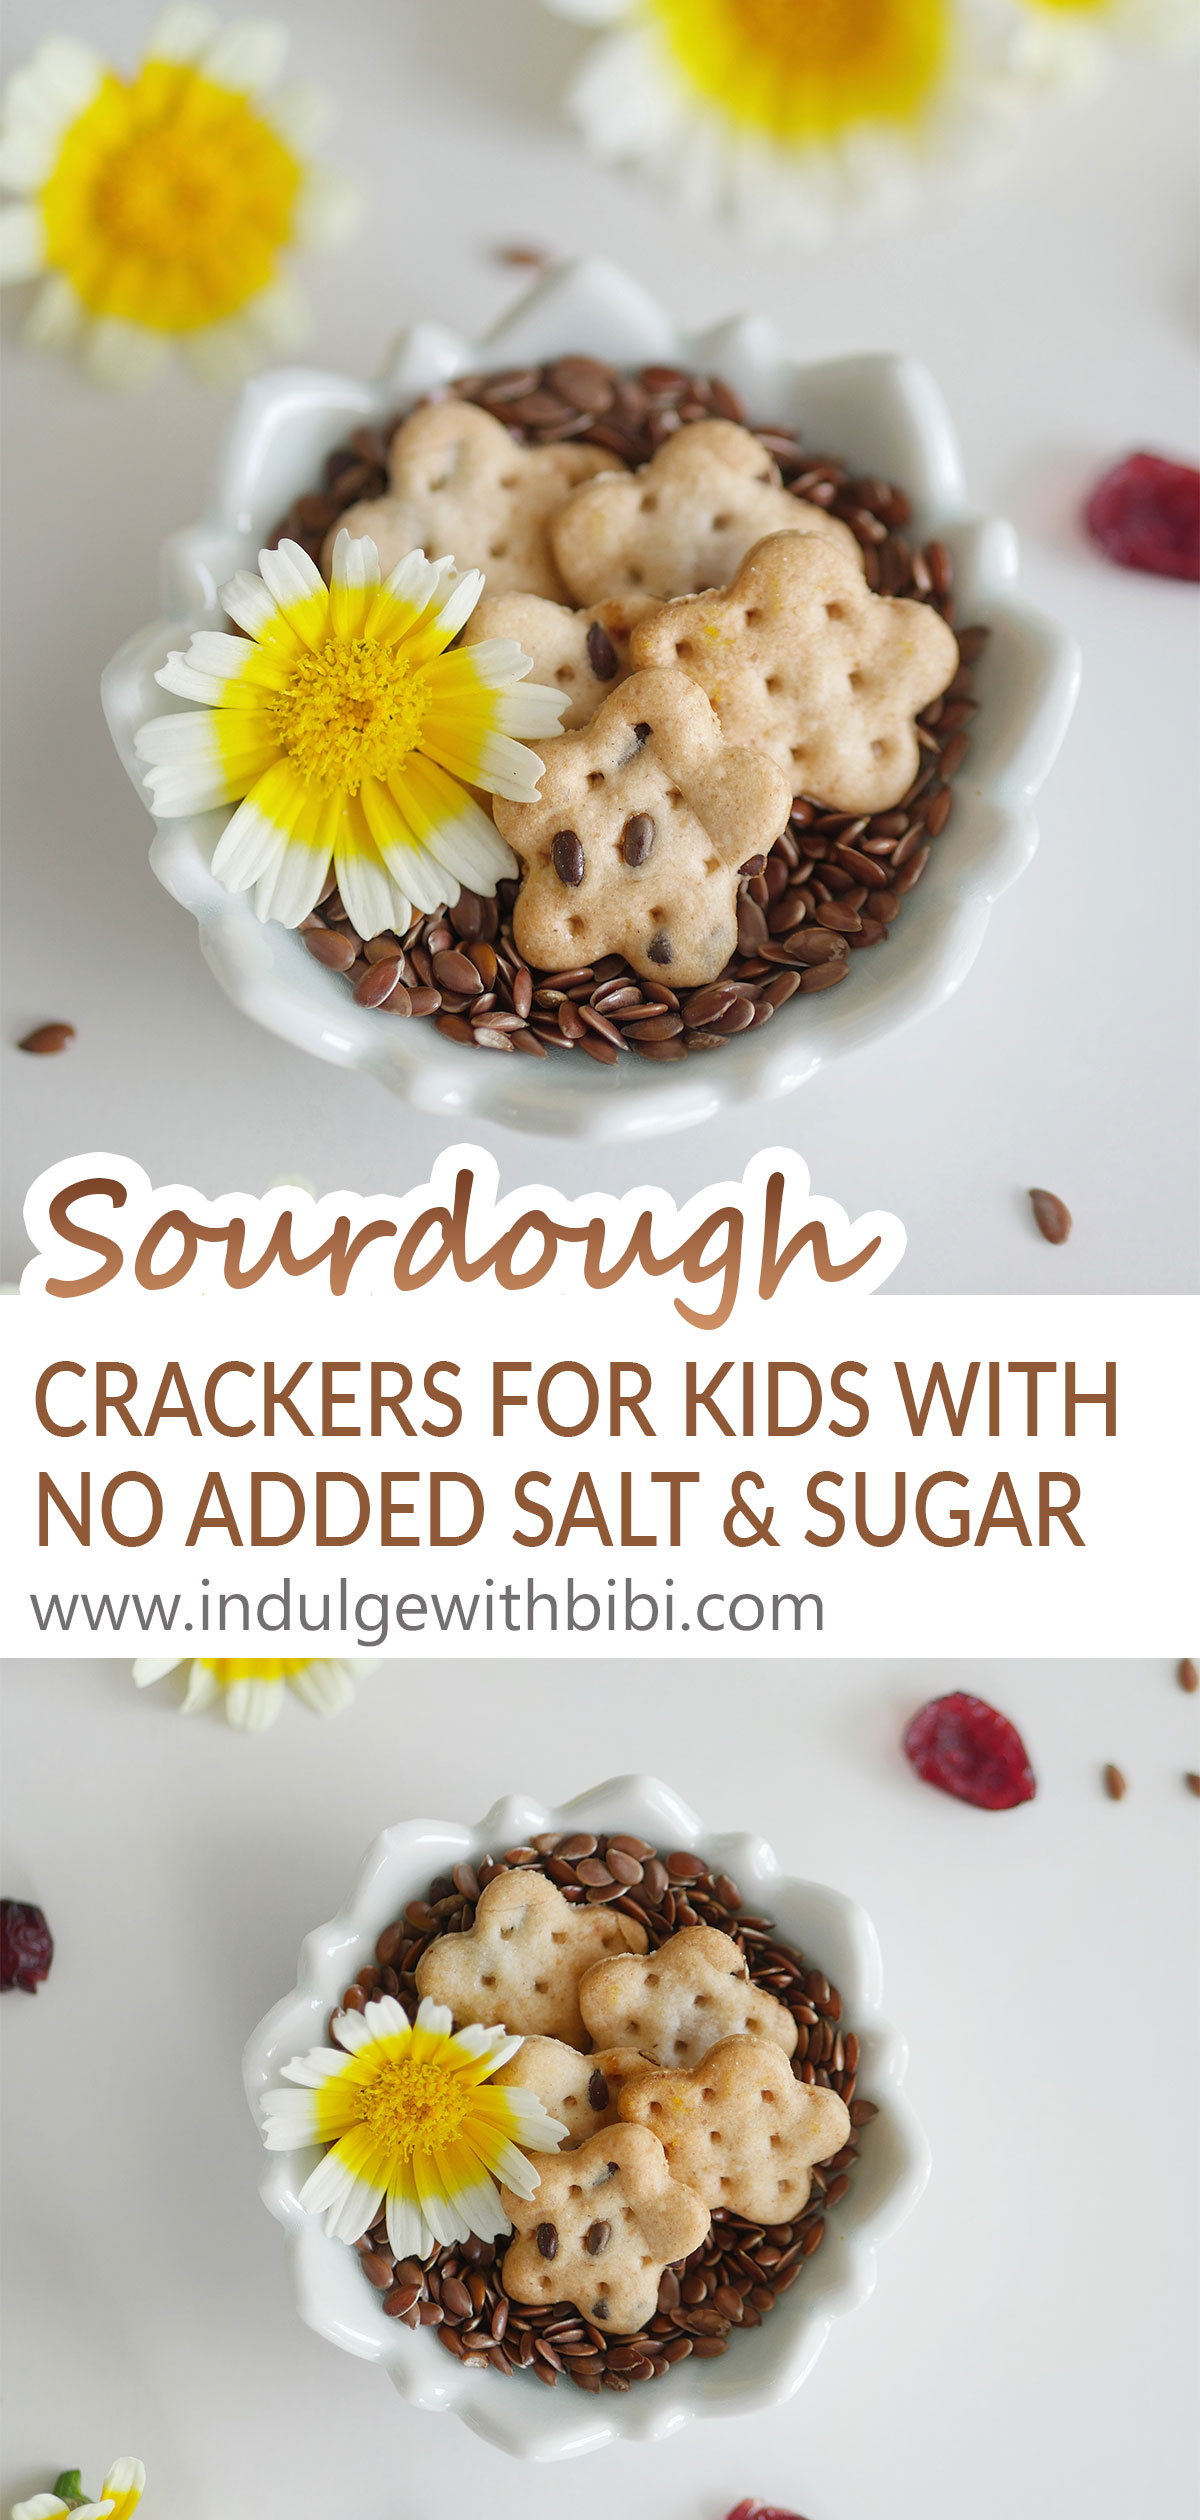 Small sourdough crackers on a bed of flaxseed in a small plate.